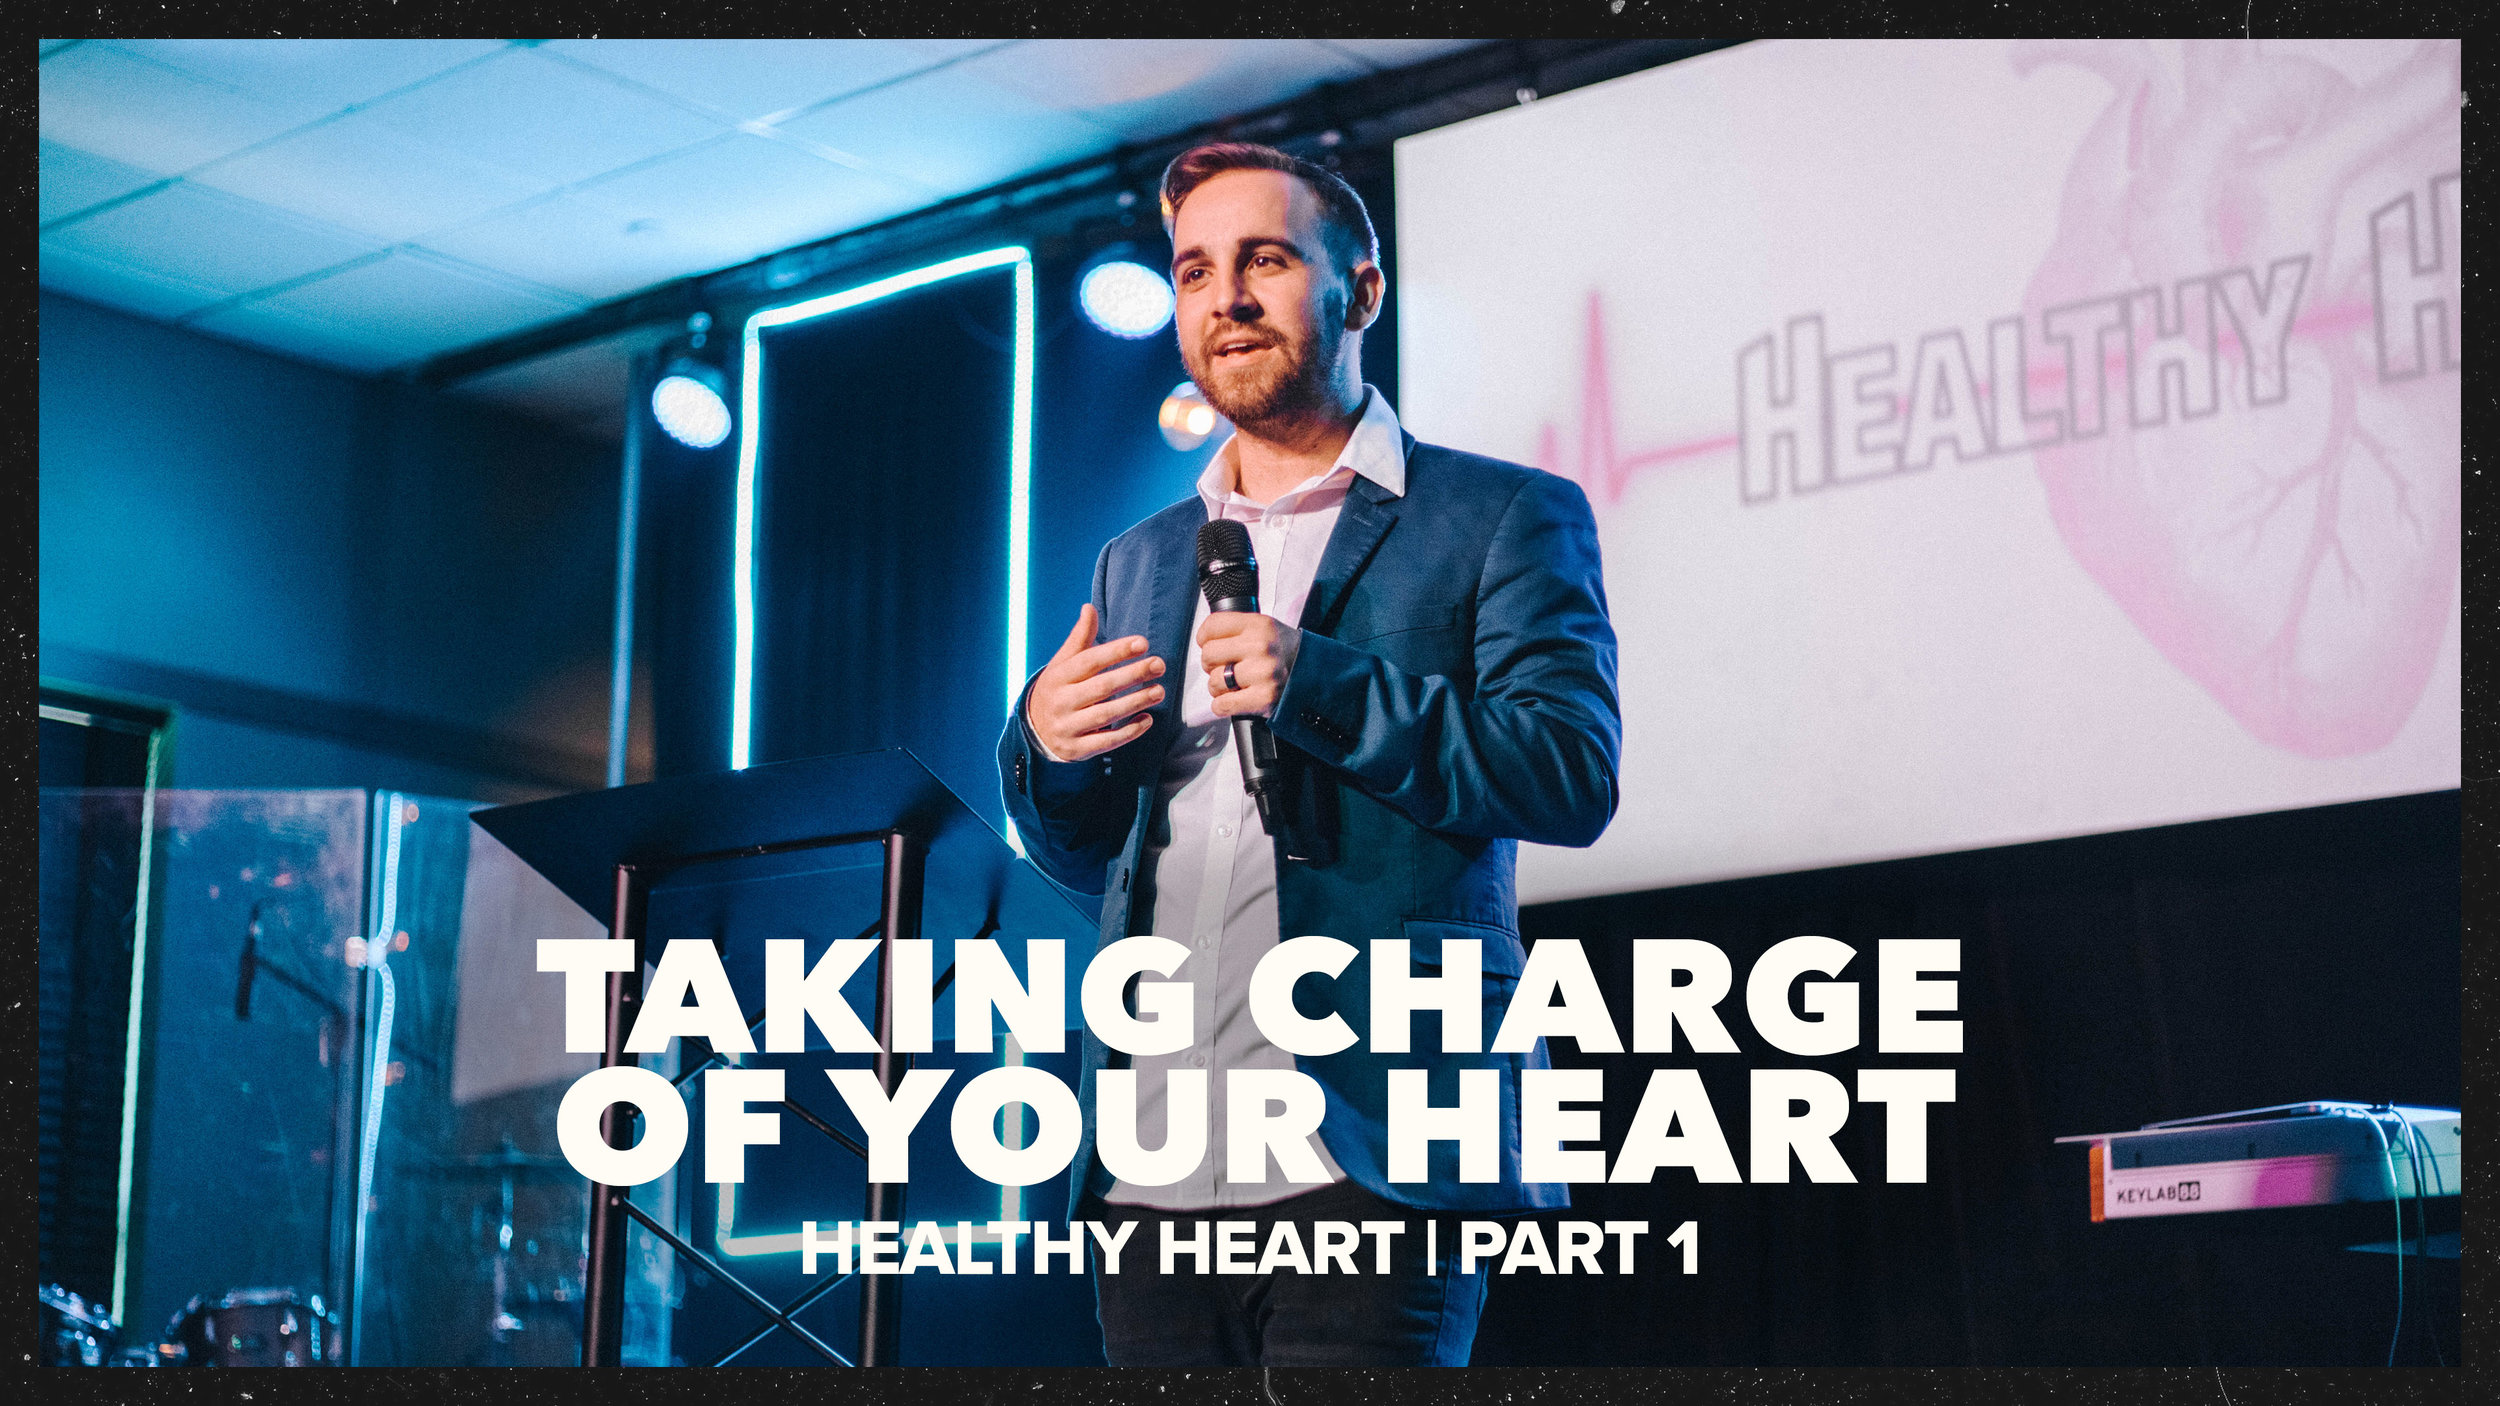 taking charge of heart.jpg